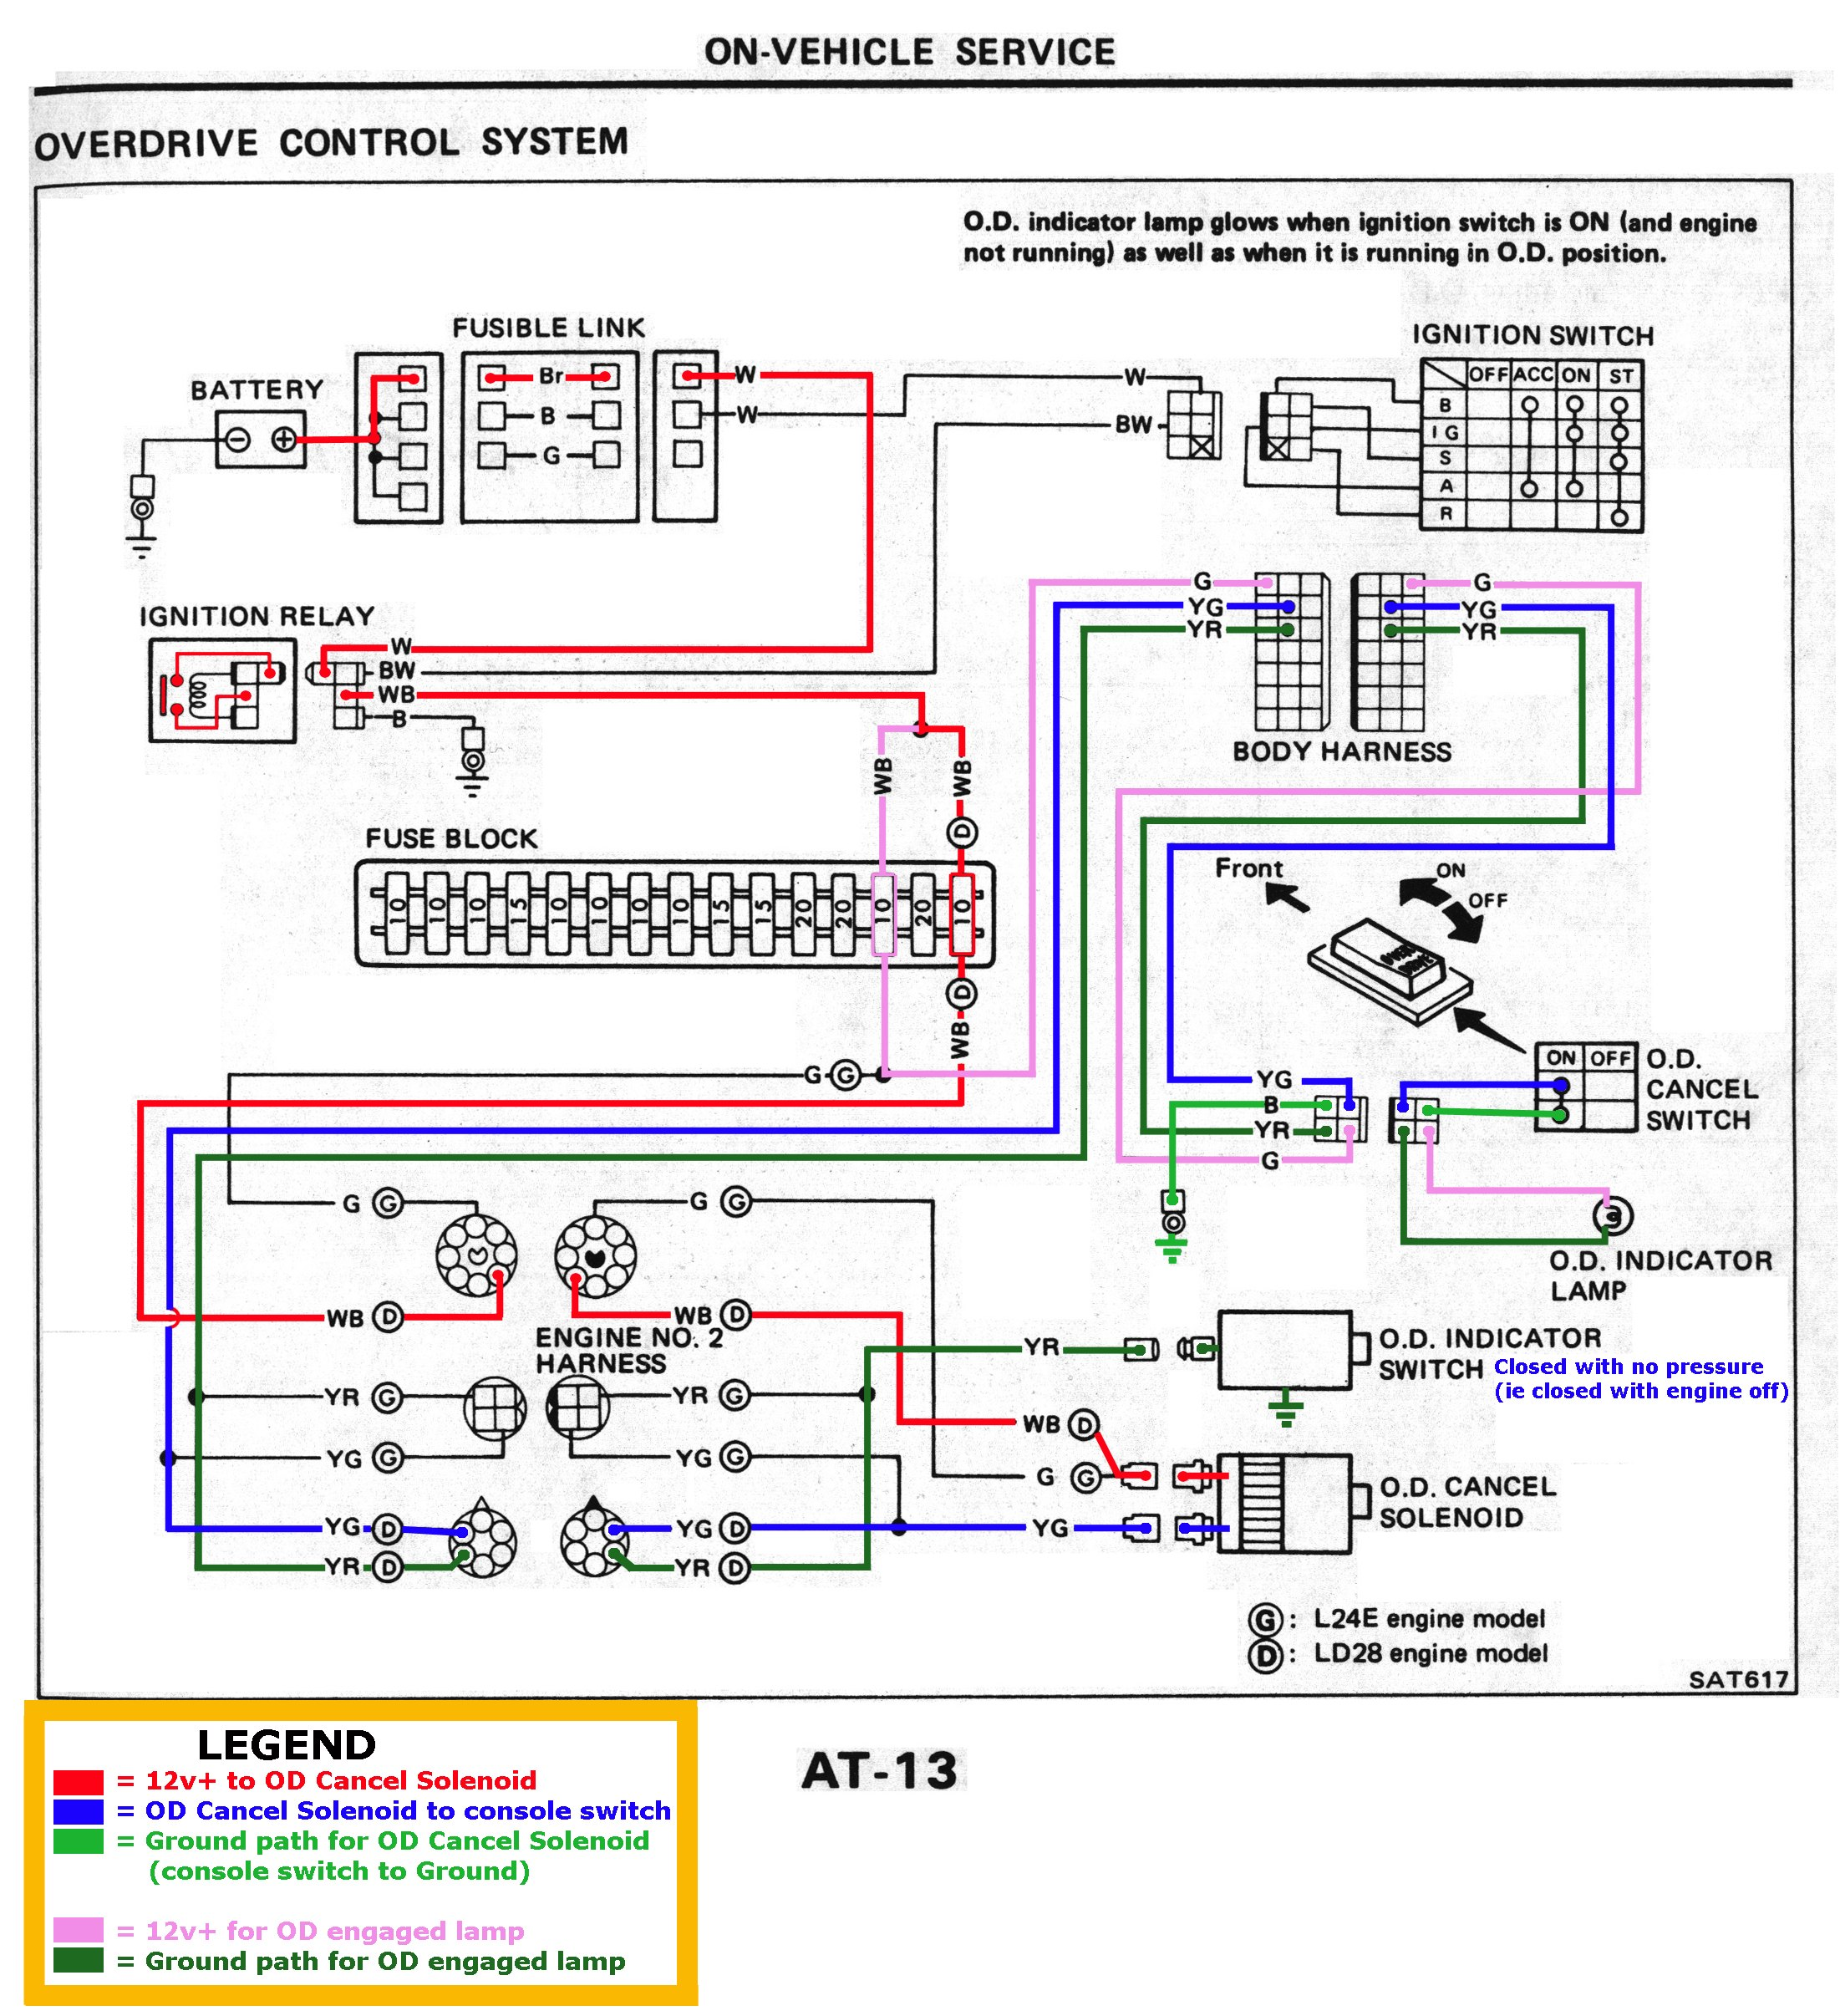 FSM_1983_AT 013 1b datsun 720 wiring diagram toyota corolla wiring diagram wiring Ford Alternator Wiring Diagram at soozxer.org